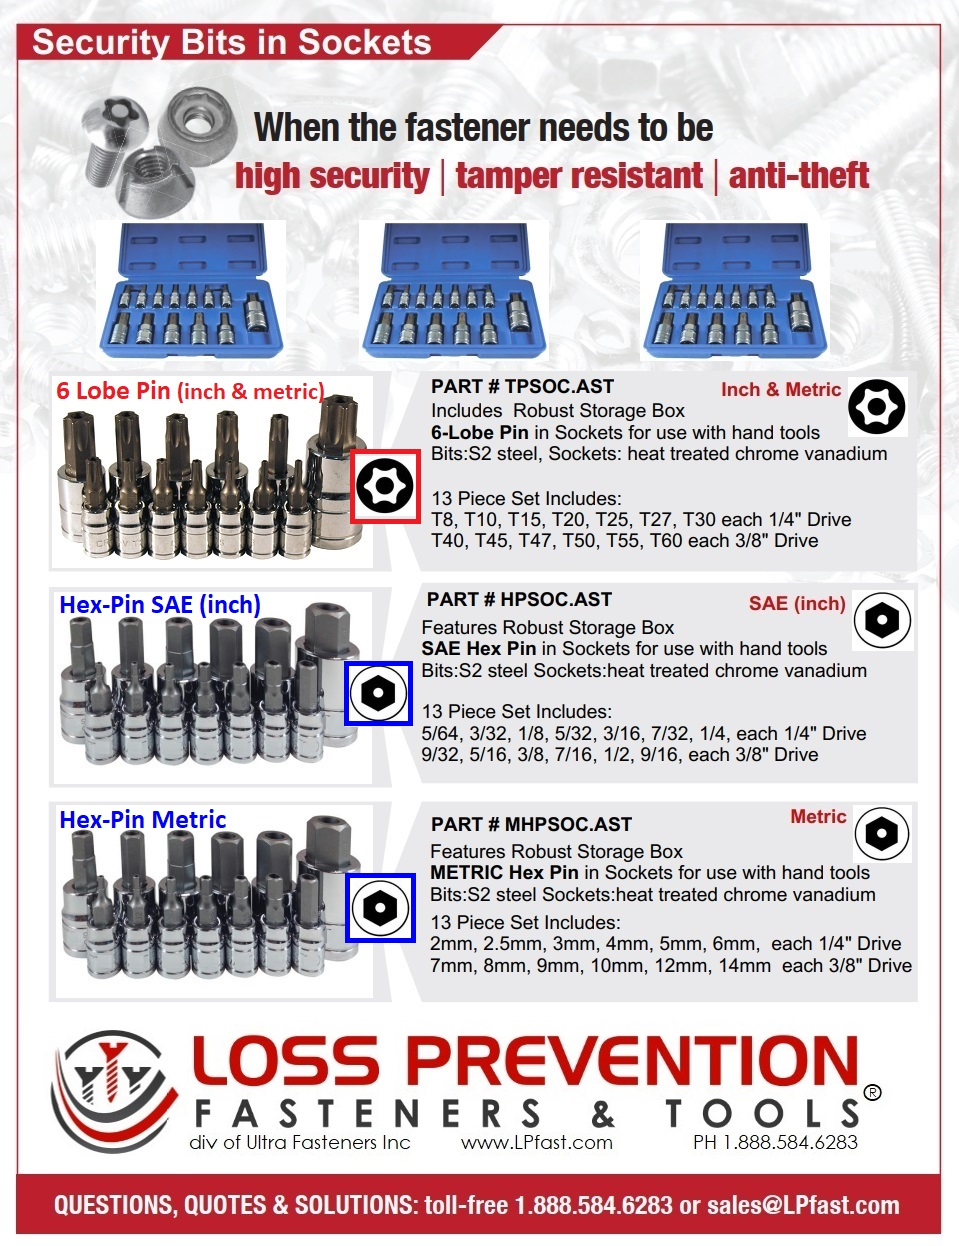 loss-prevention-hex-pin